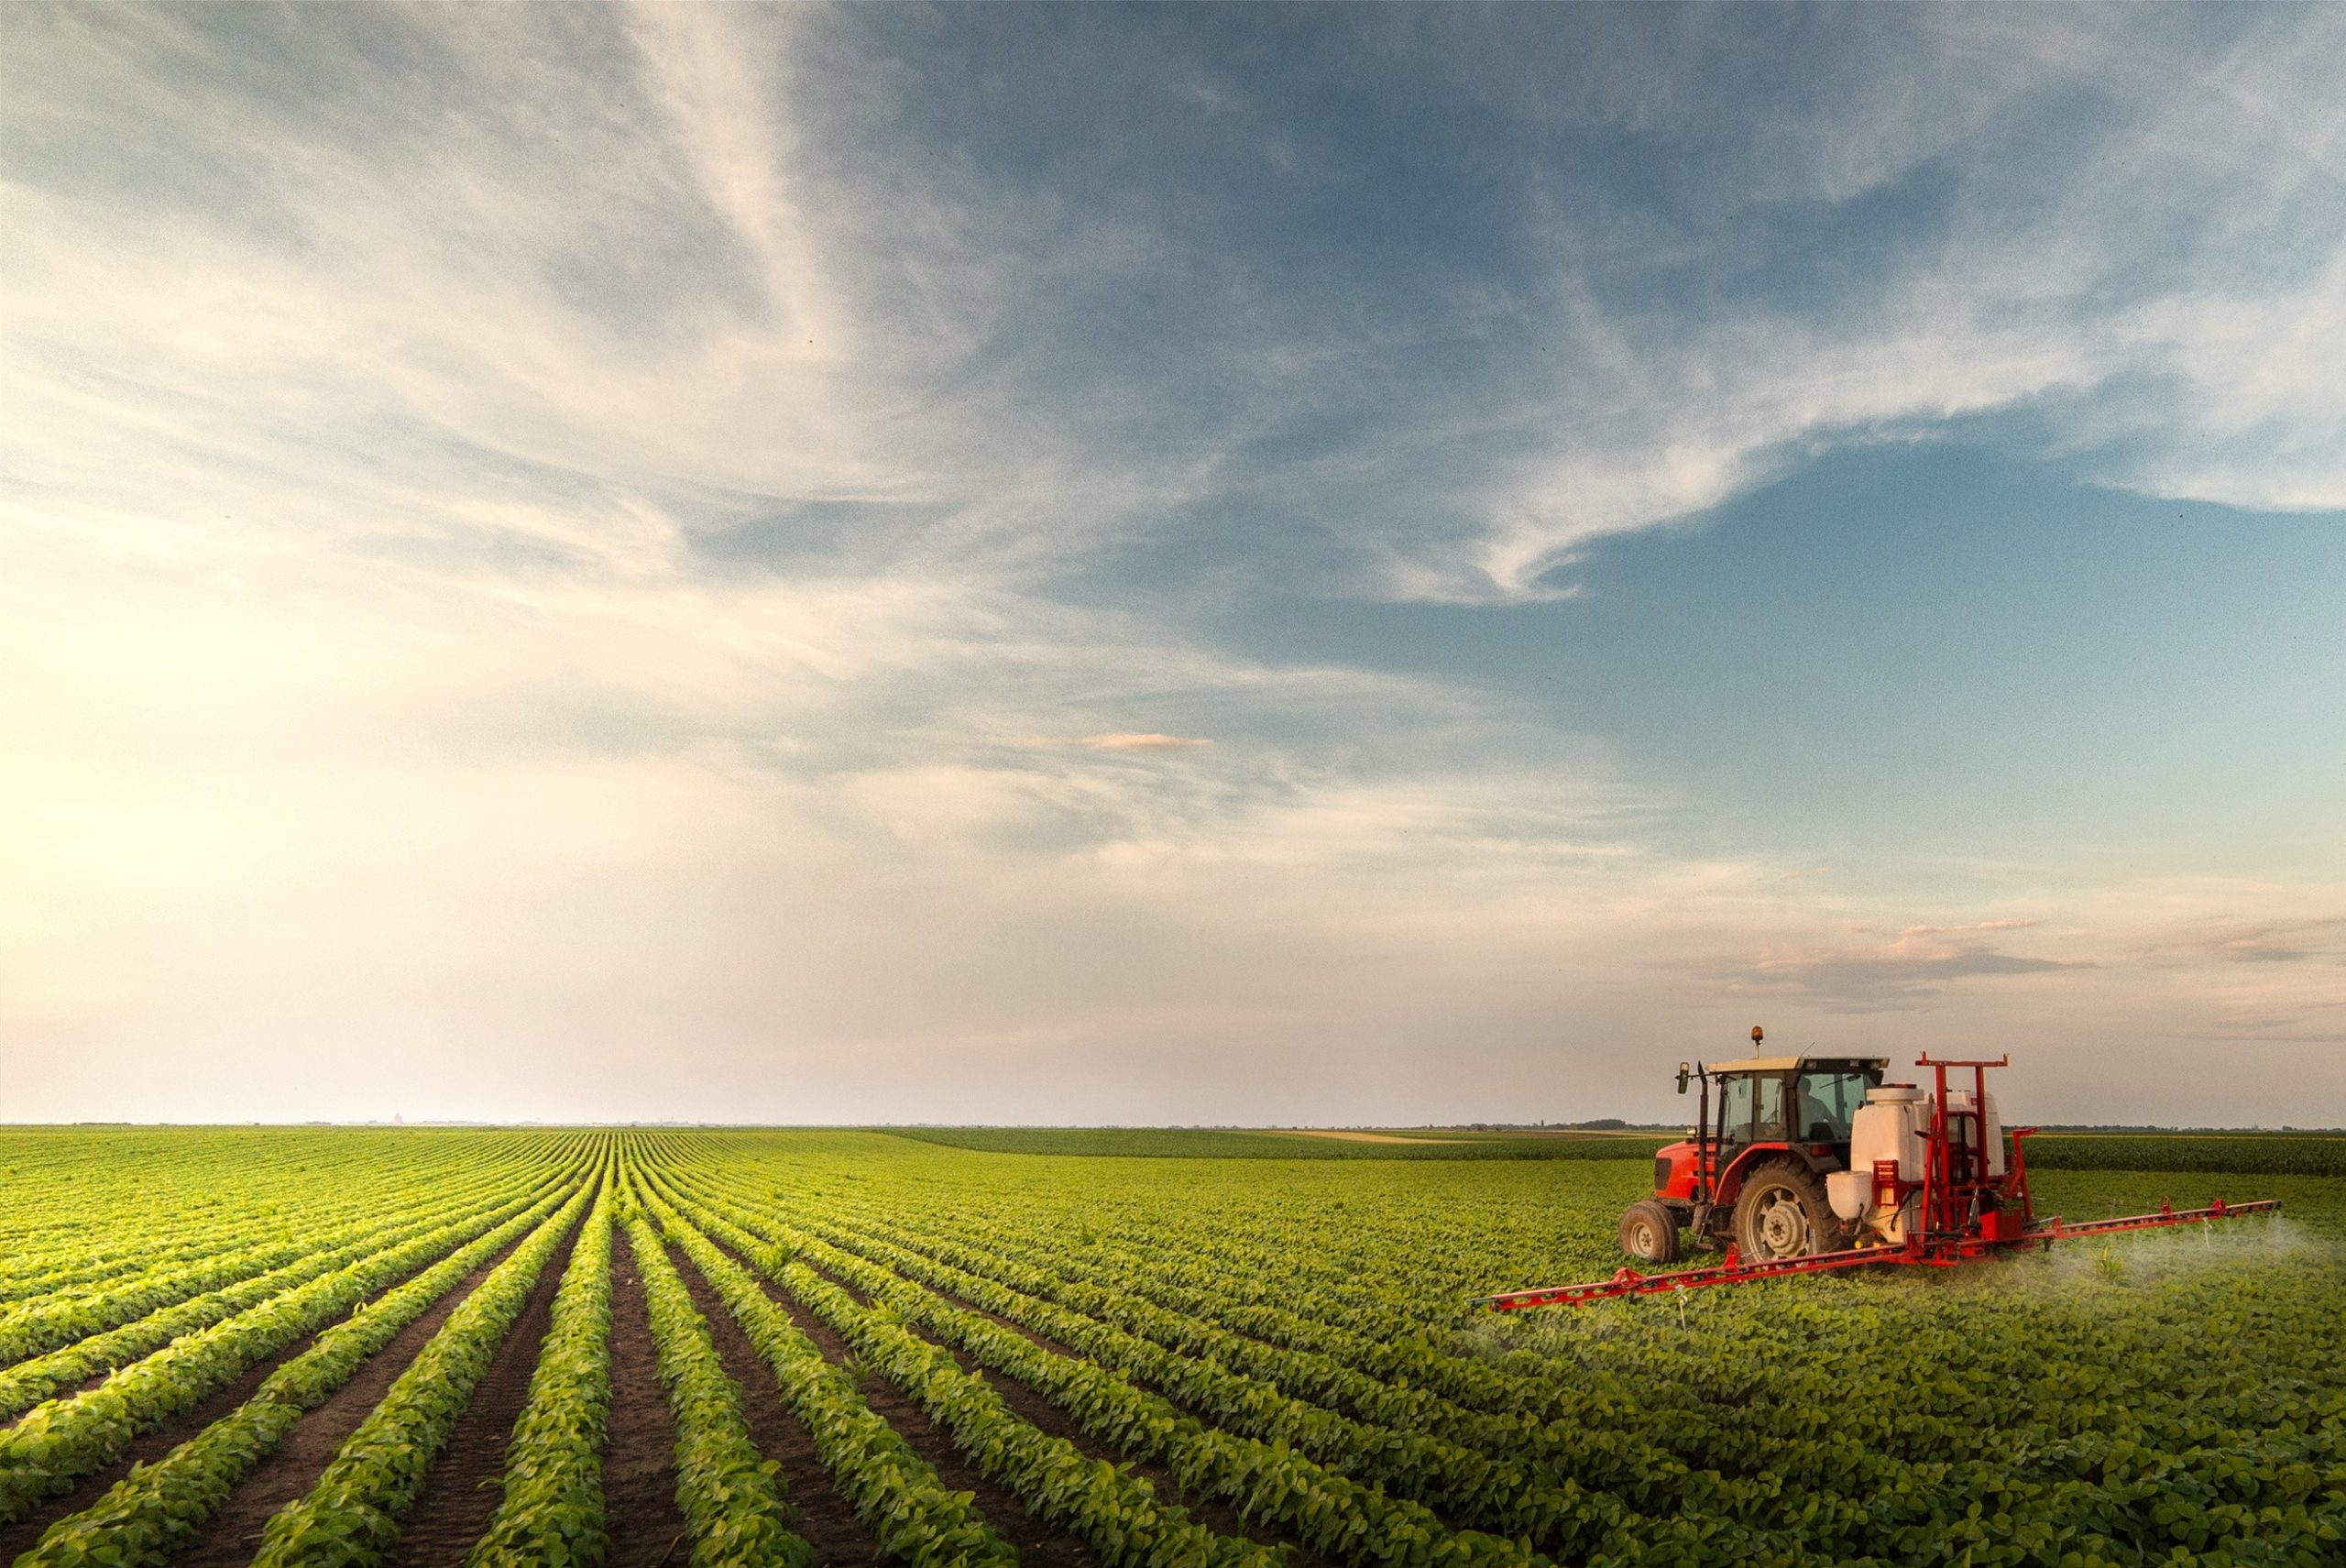 Tractor spraying glyphosate at soy bean field